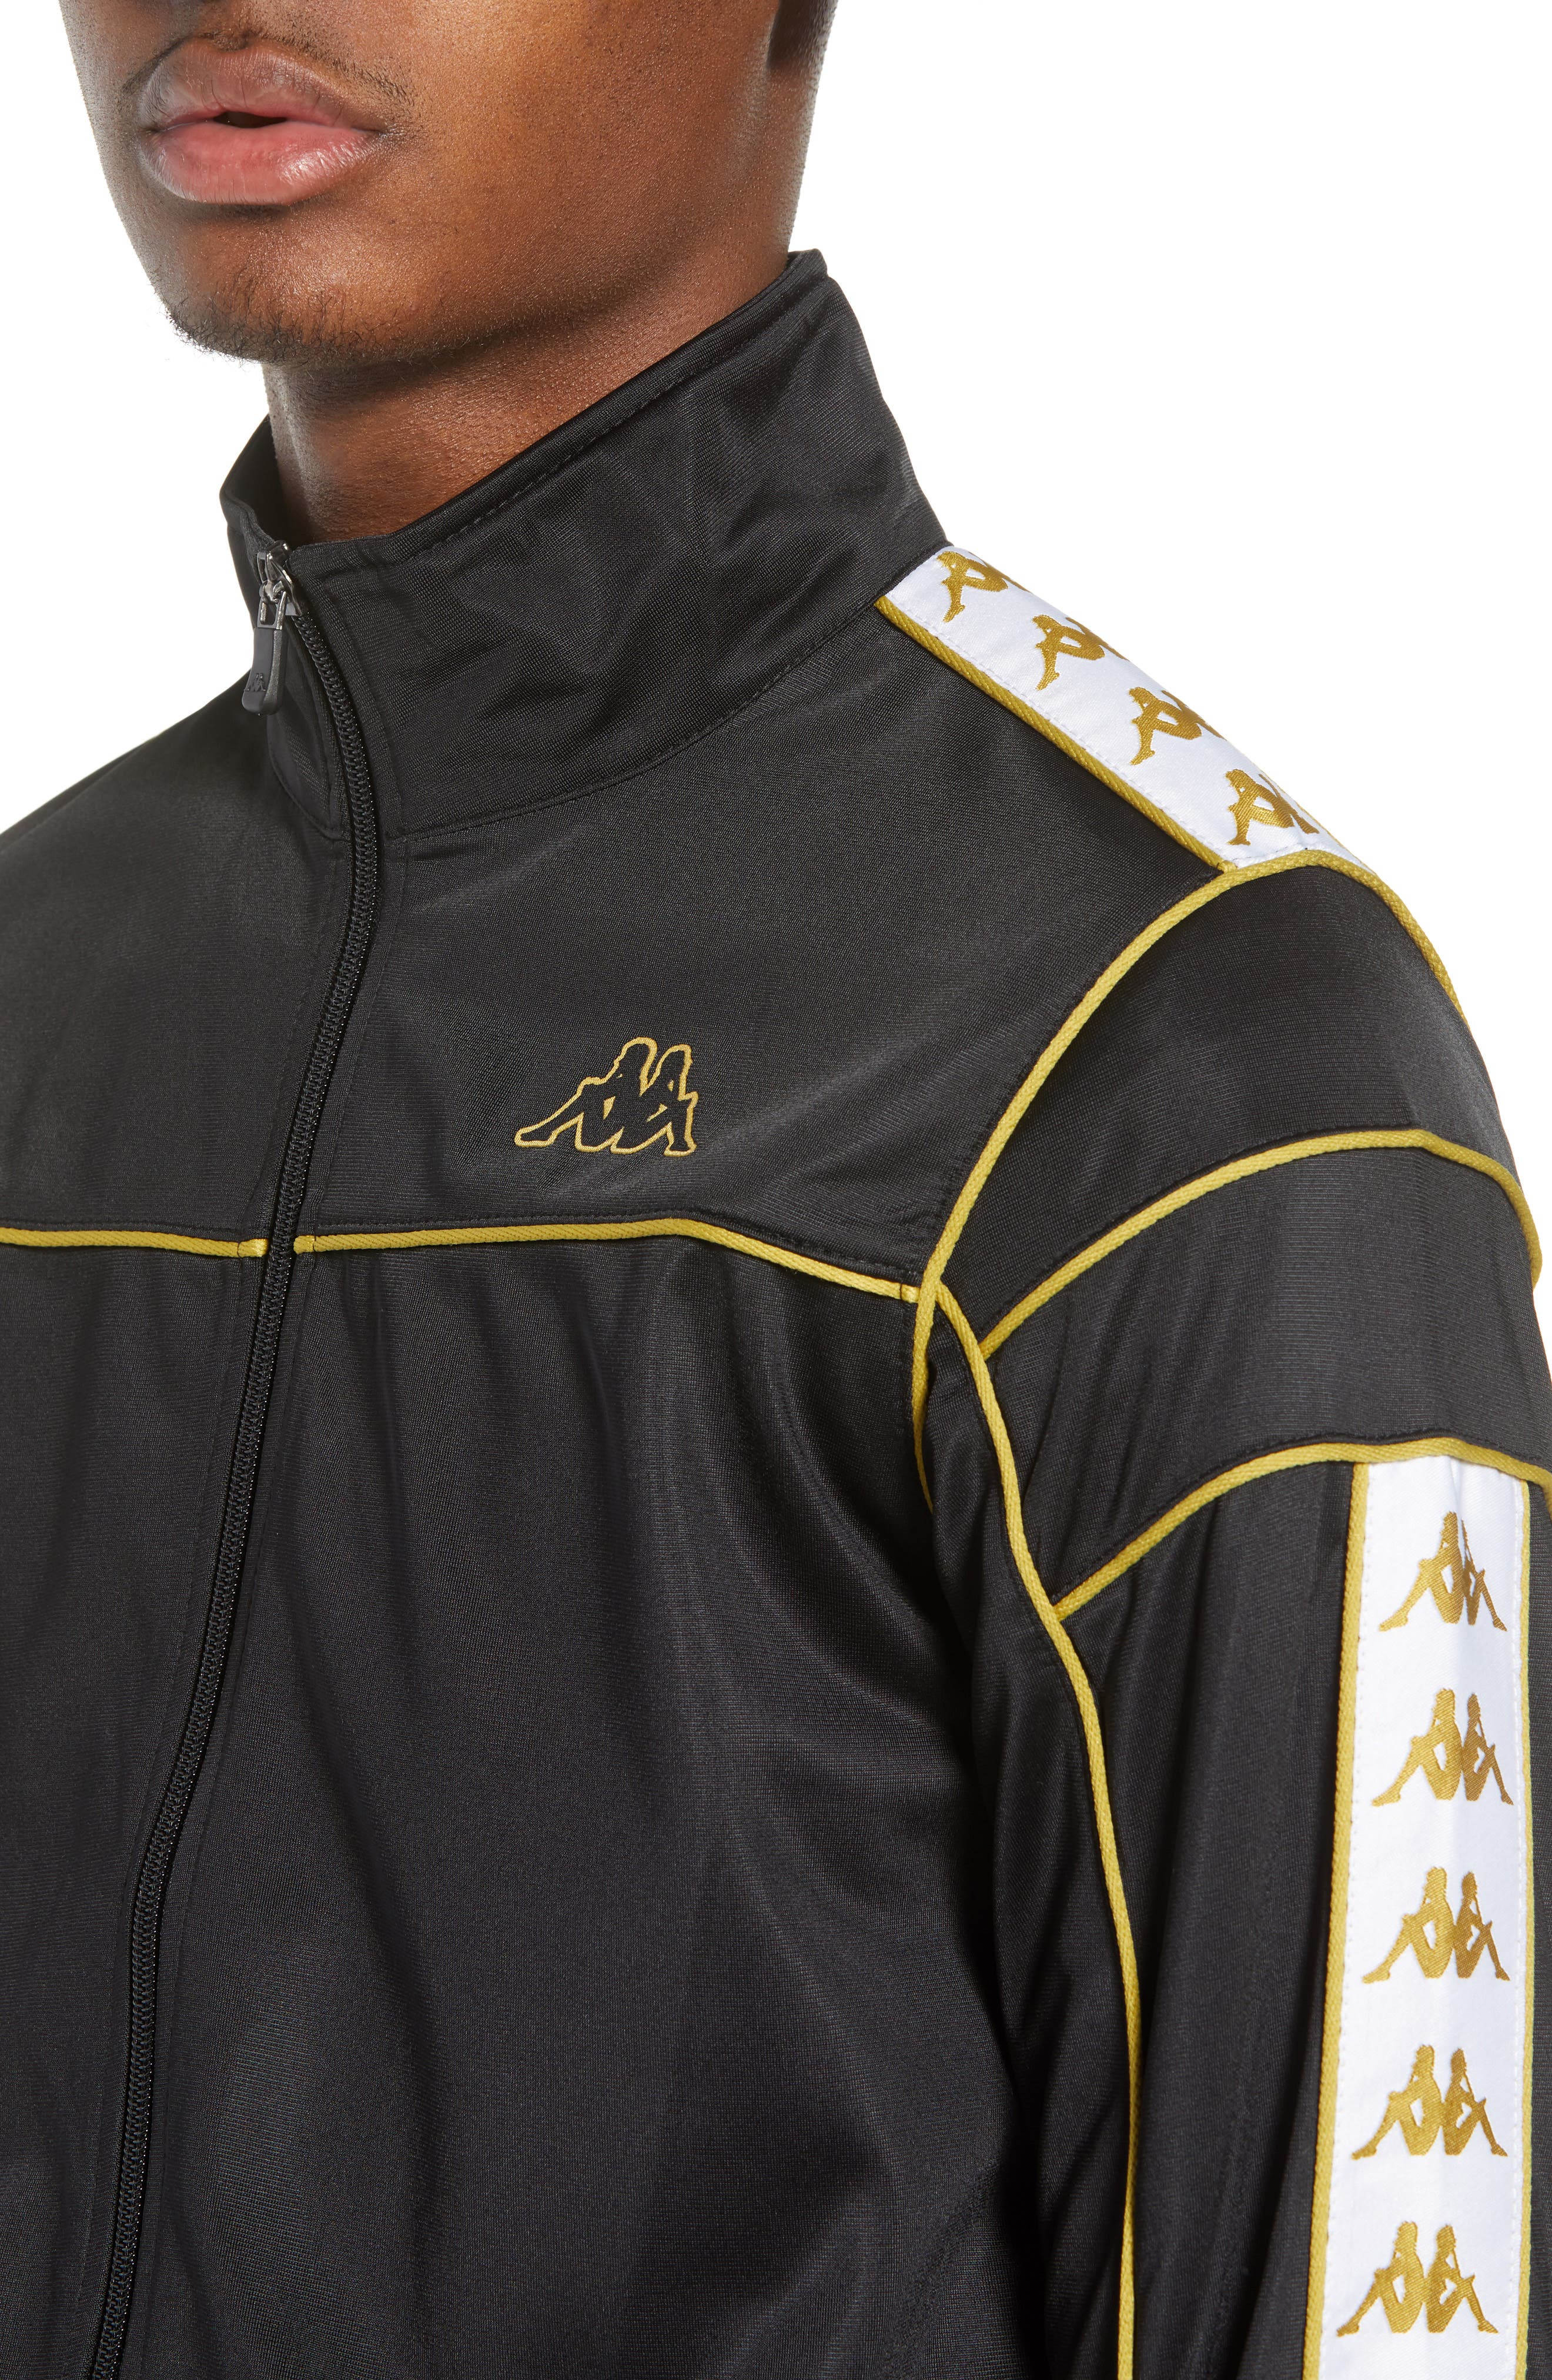 Racing Track Jacket,                             Alternate thumbnail 4, color,                             Black/ White Gold